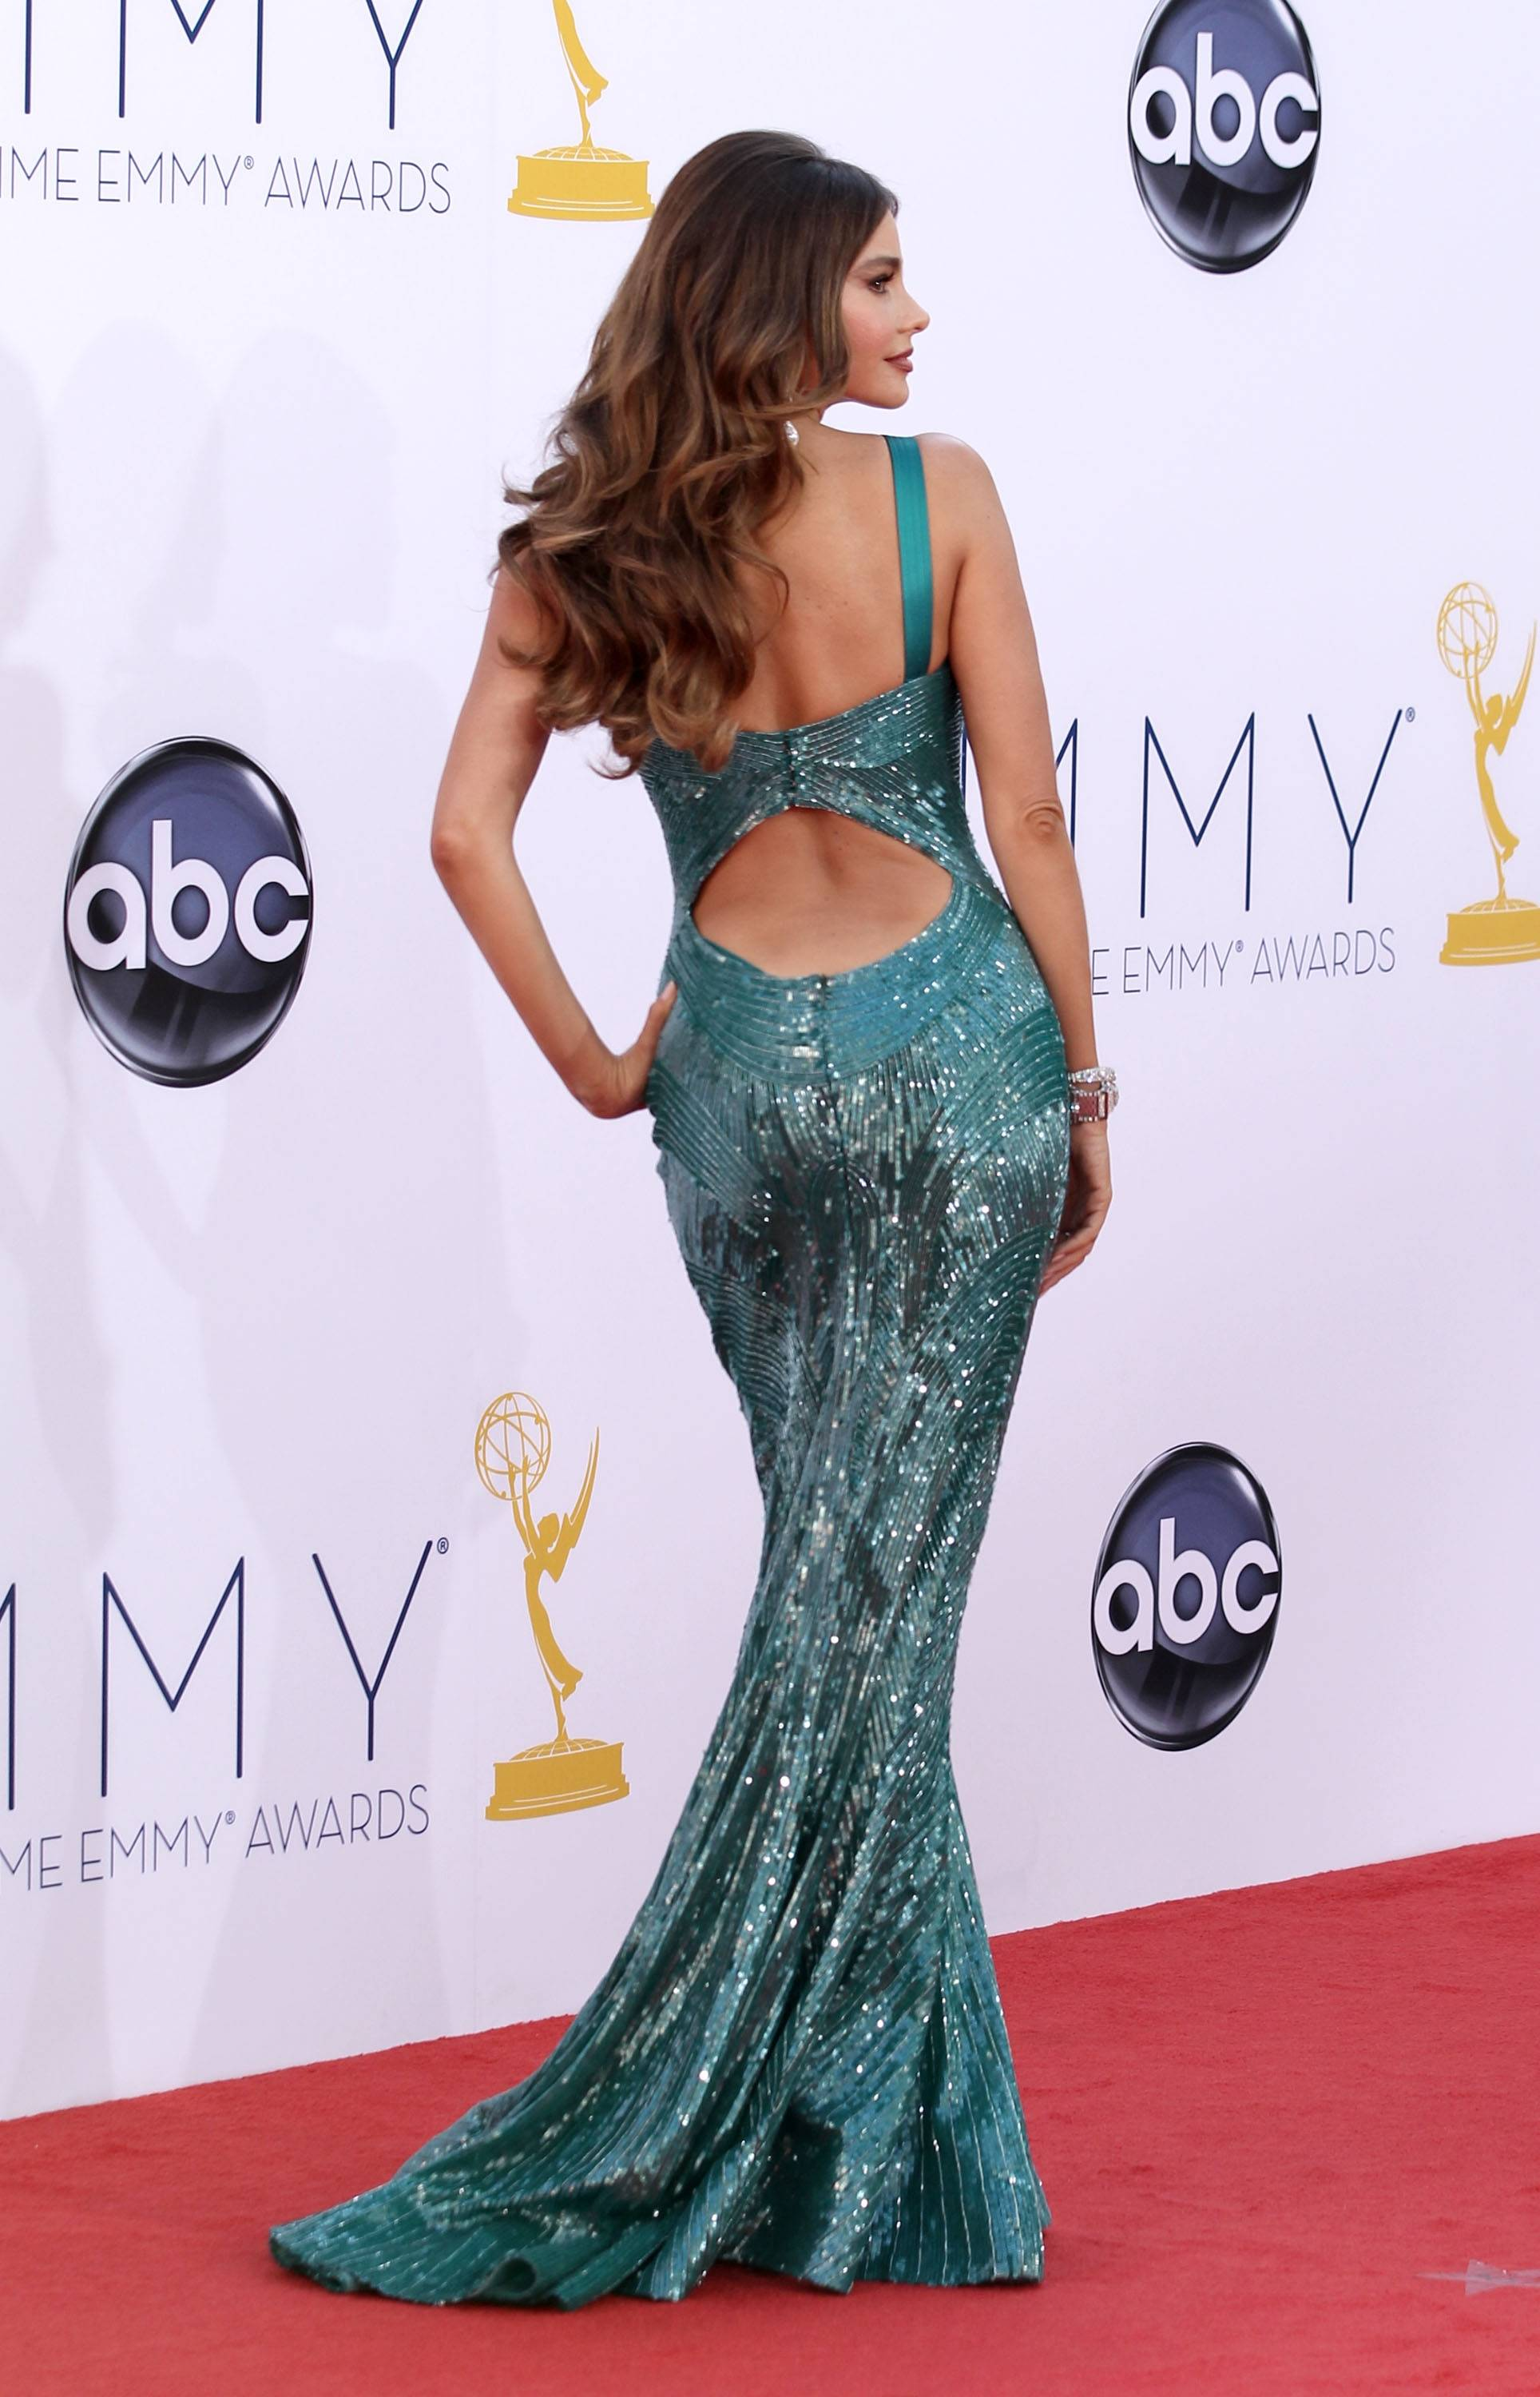 """Modern Family"" funny woman Sophia Vergara brings a little vavavoom to the red carpet."